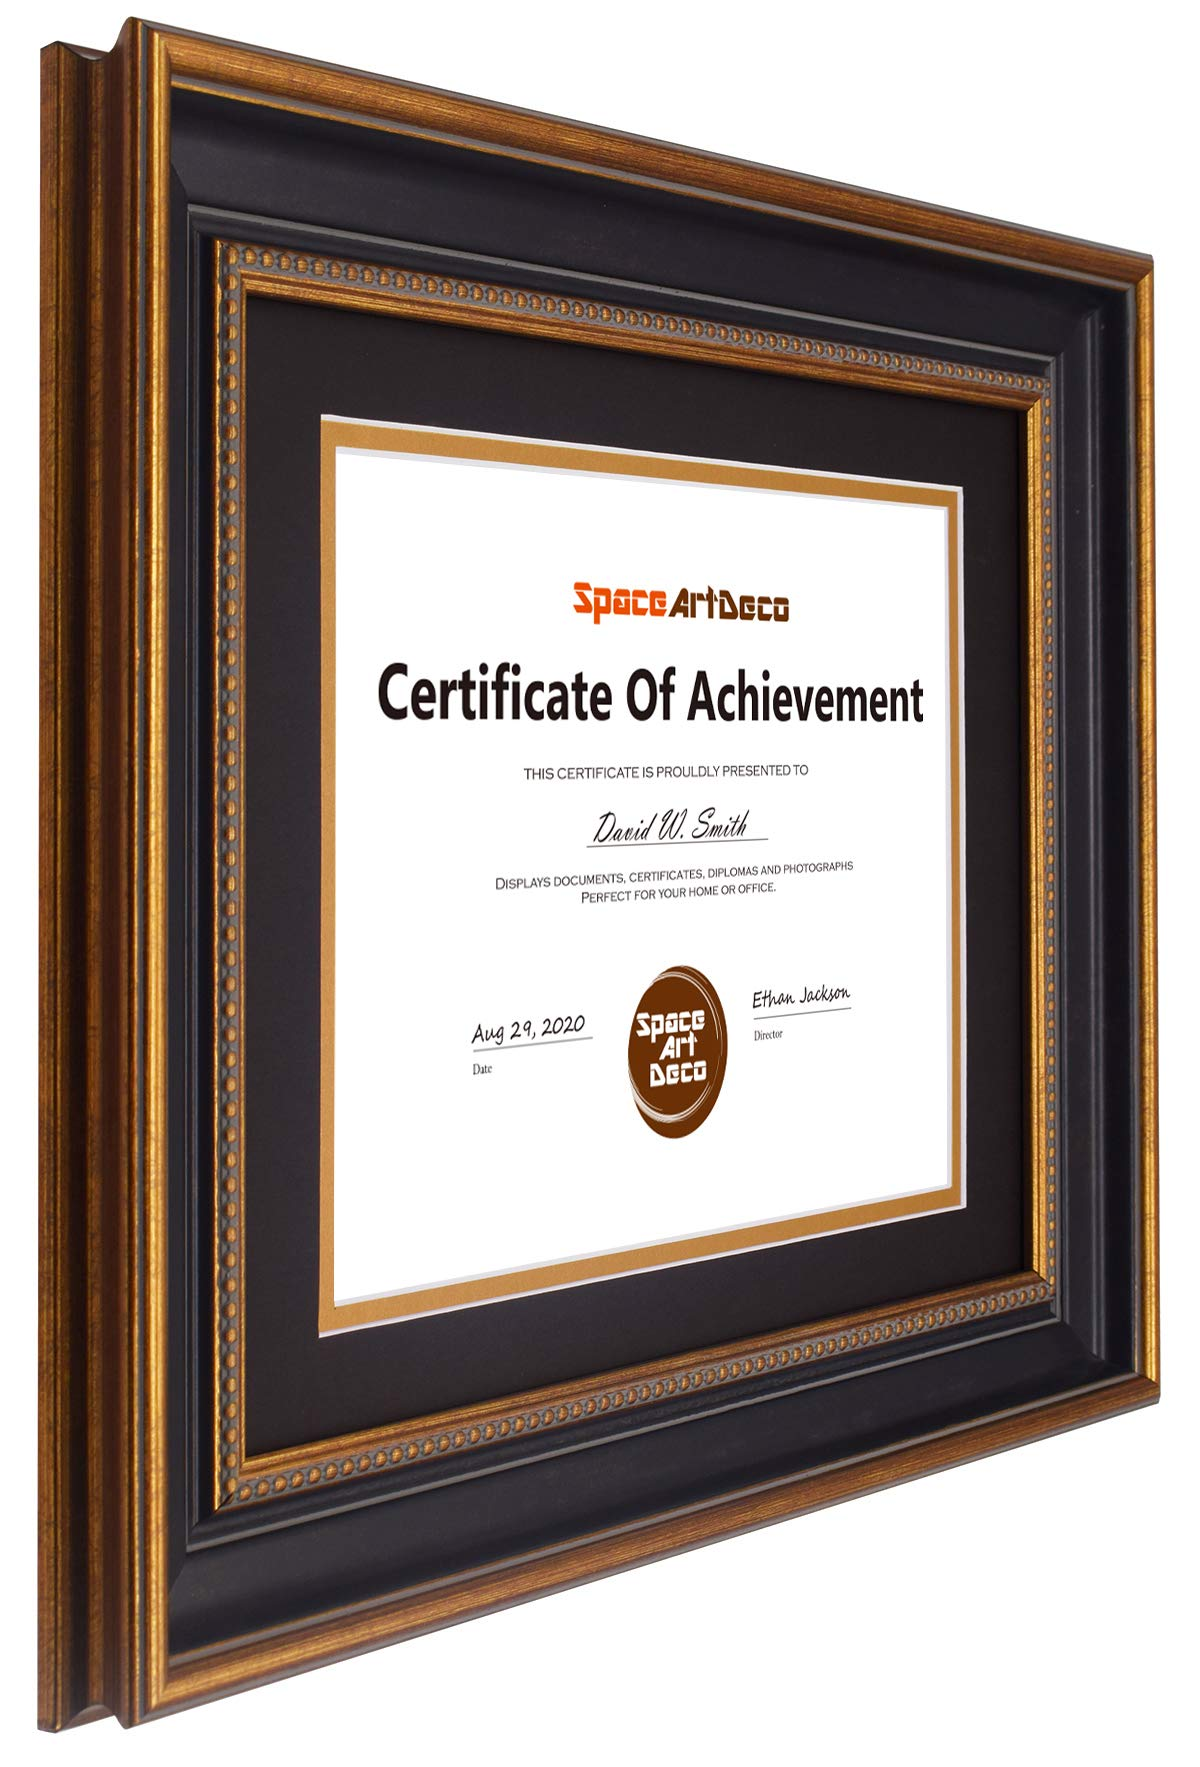 Space Art Deco, 11x14 Ornate Gold Diploma Frame - Black/Gold Double Mat for 8.5x11 Document - Wall Mounting - Sawtooth Hangers - for Graduation, Commencement, Acknowledgements, Degrees by Space Art Deco (Image #2)